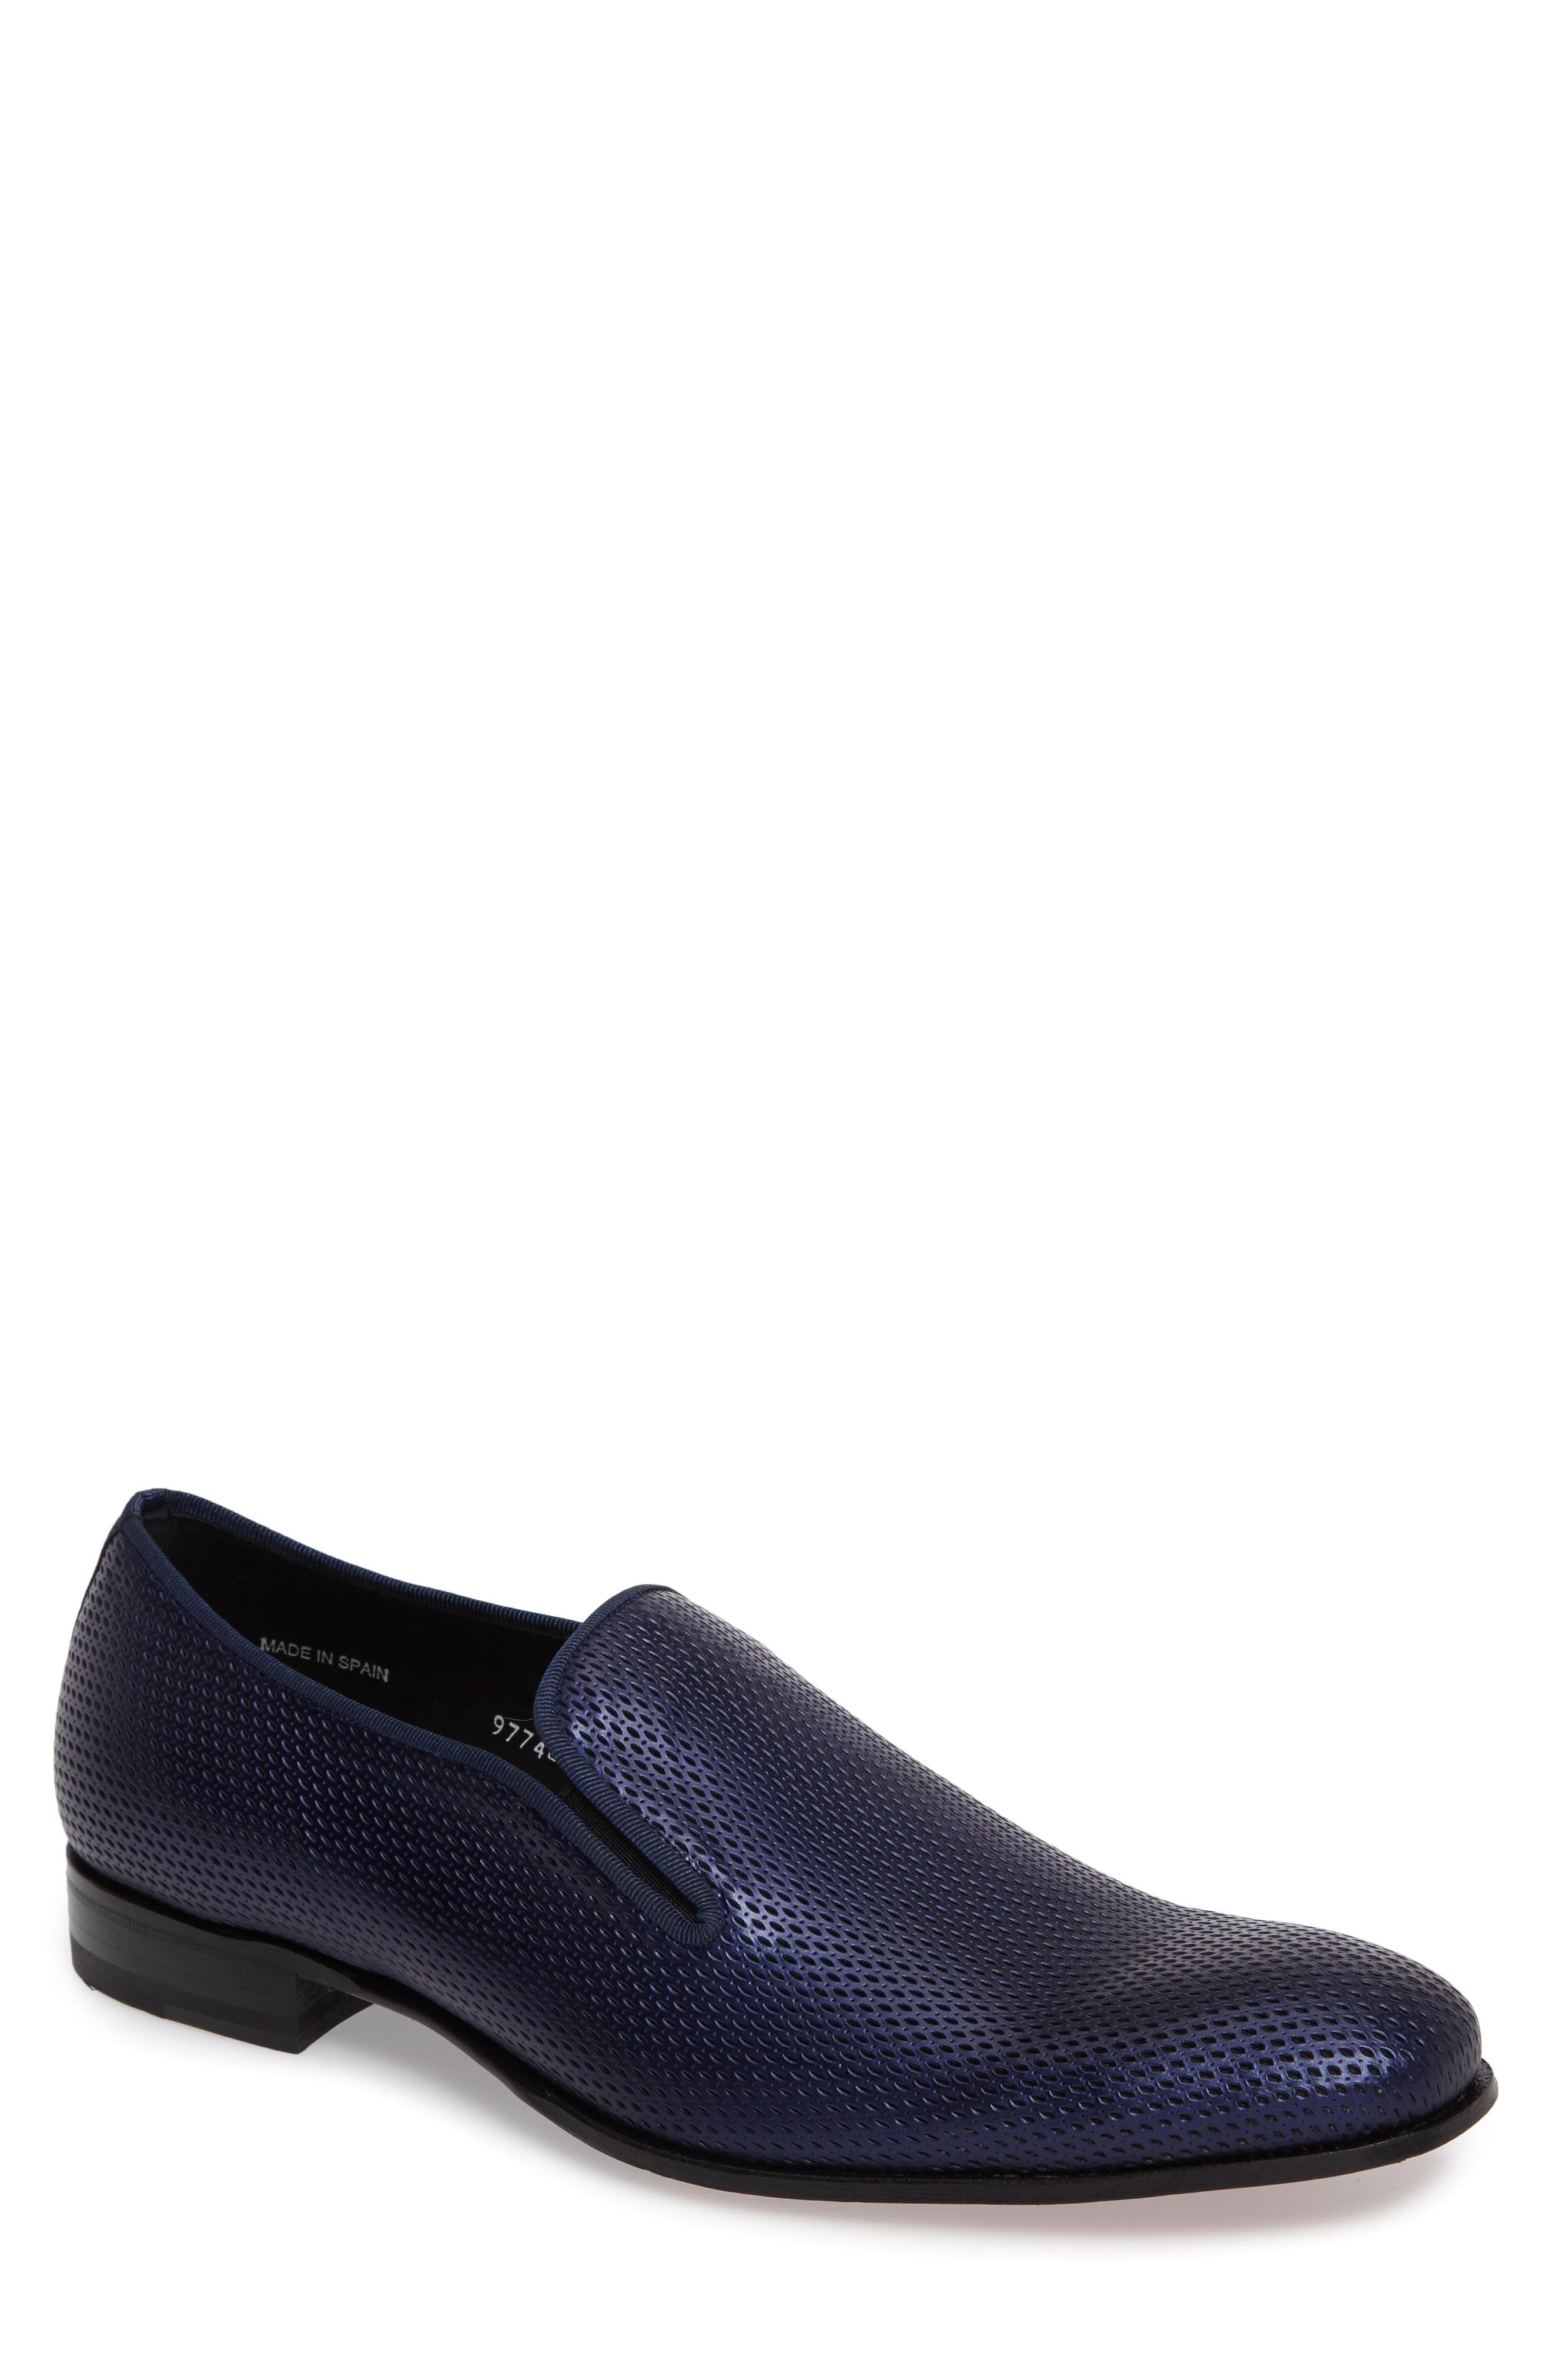 Auguste Venetian Loafer,                         Main,                         color,